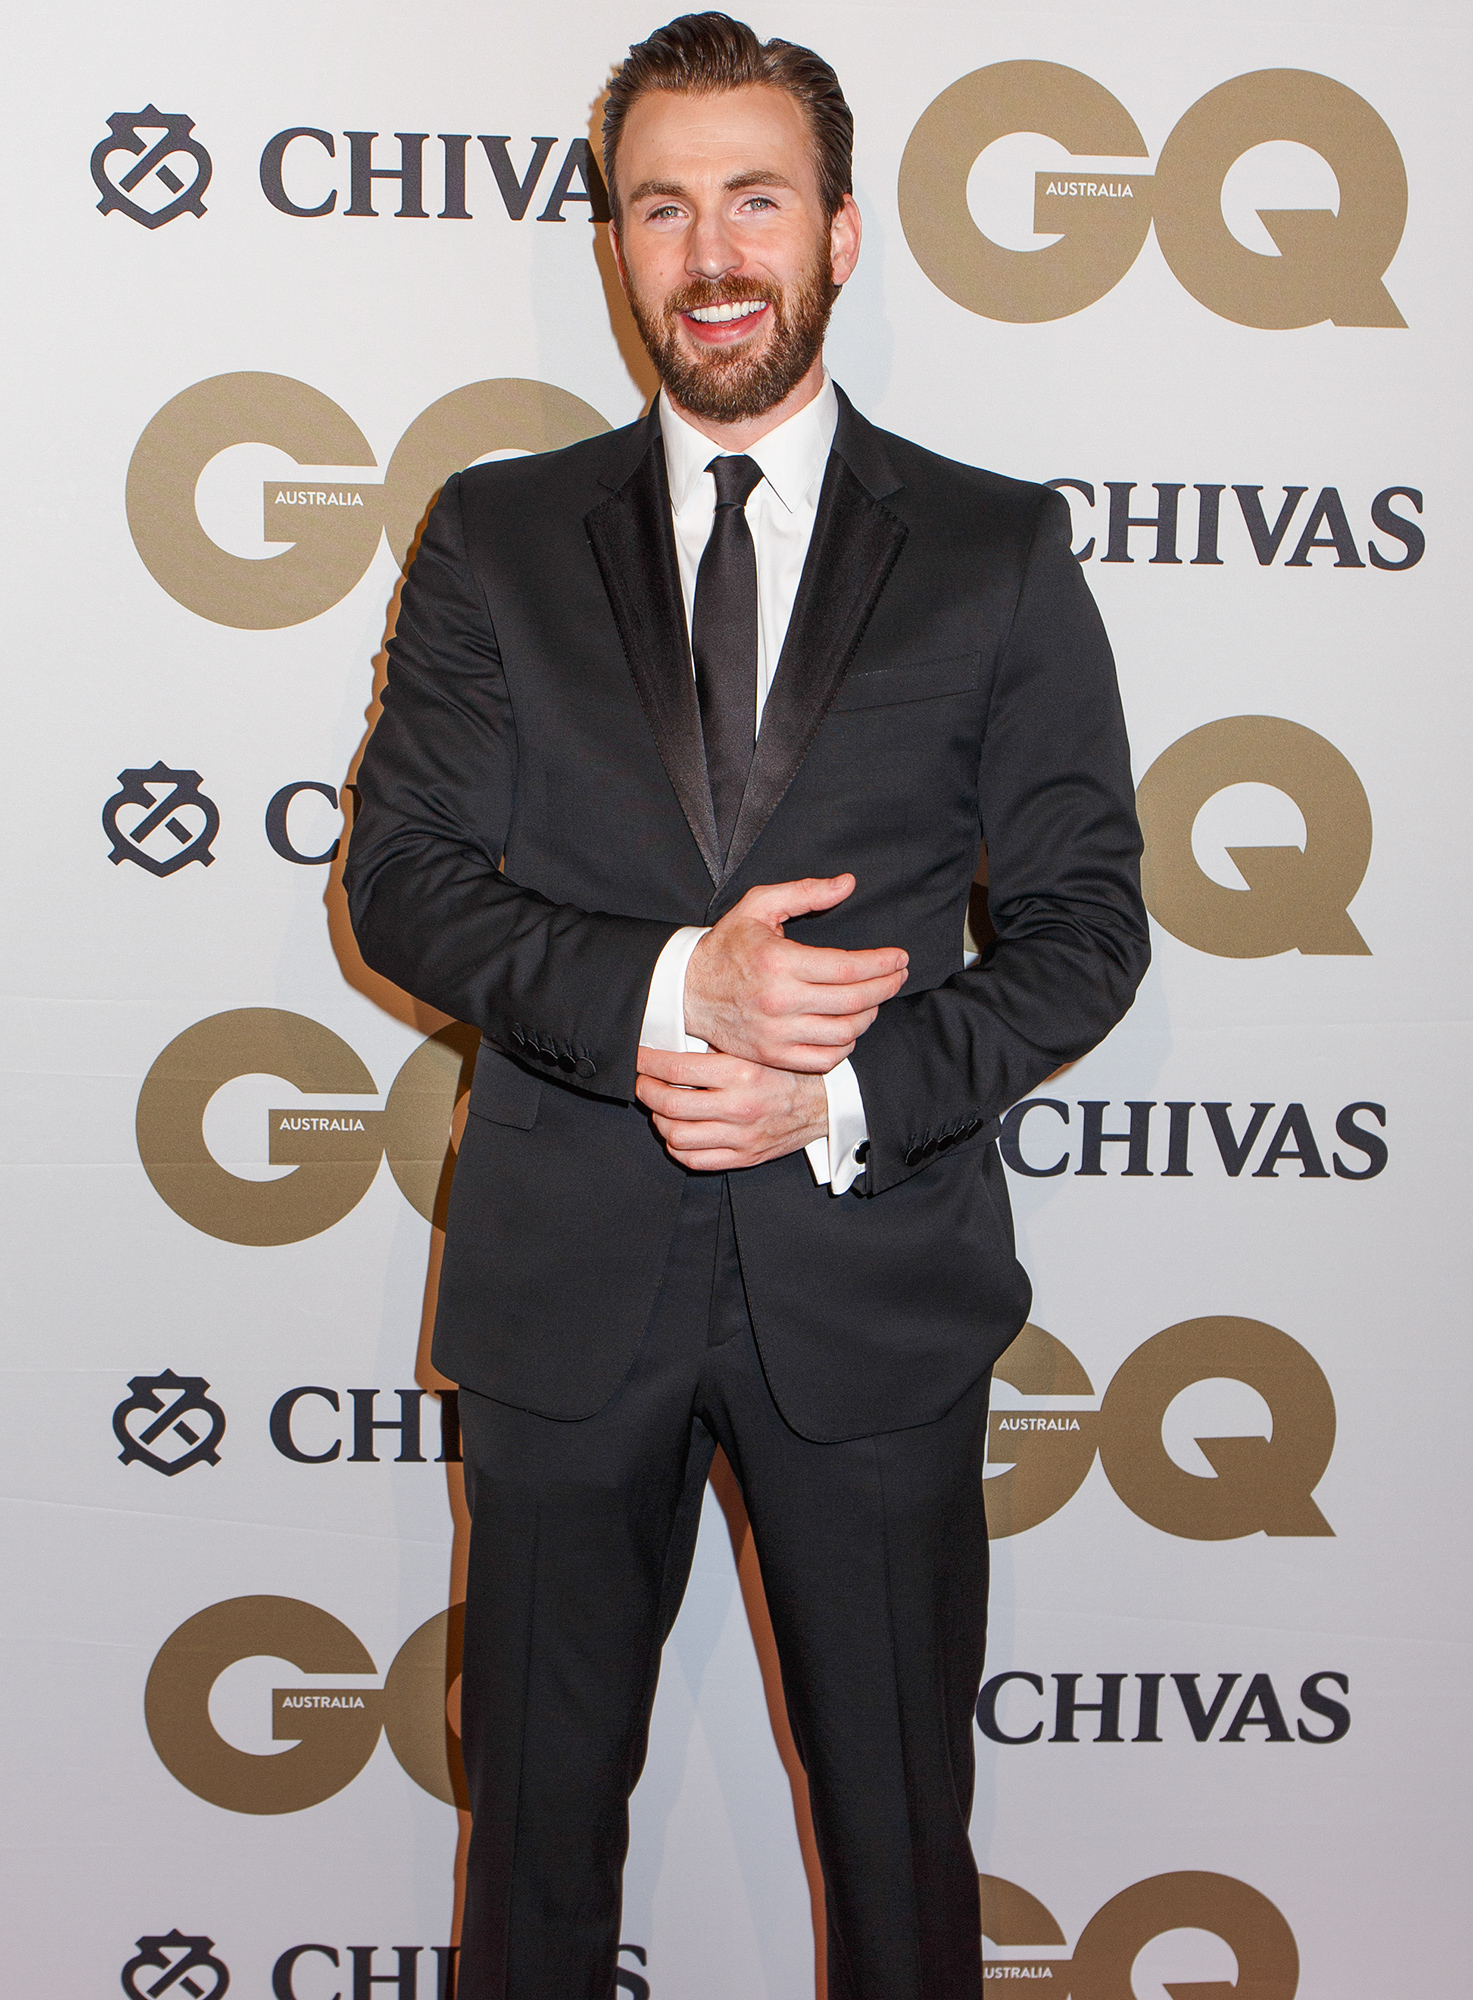 Chris Evans attends GQ Men of the Year Awards 2016